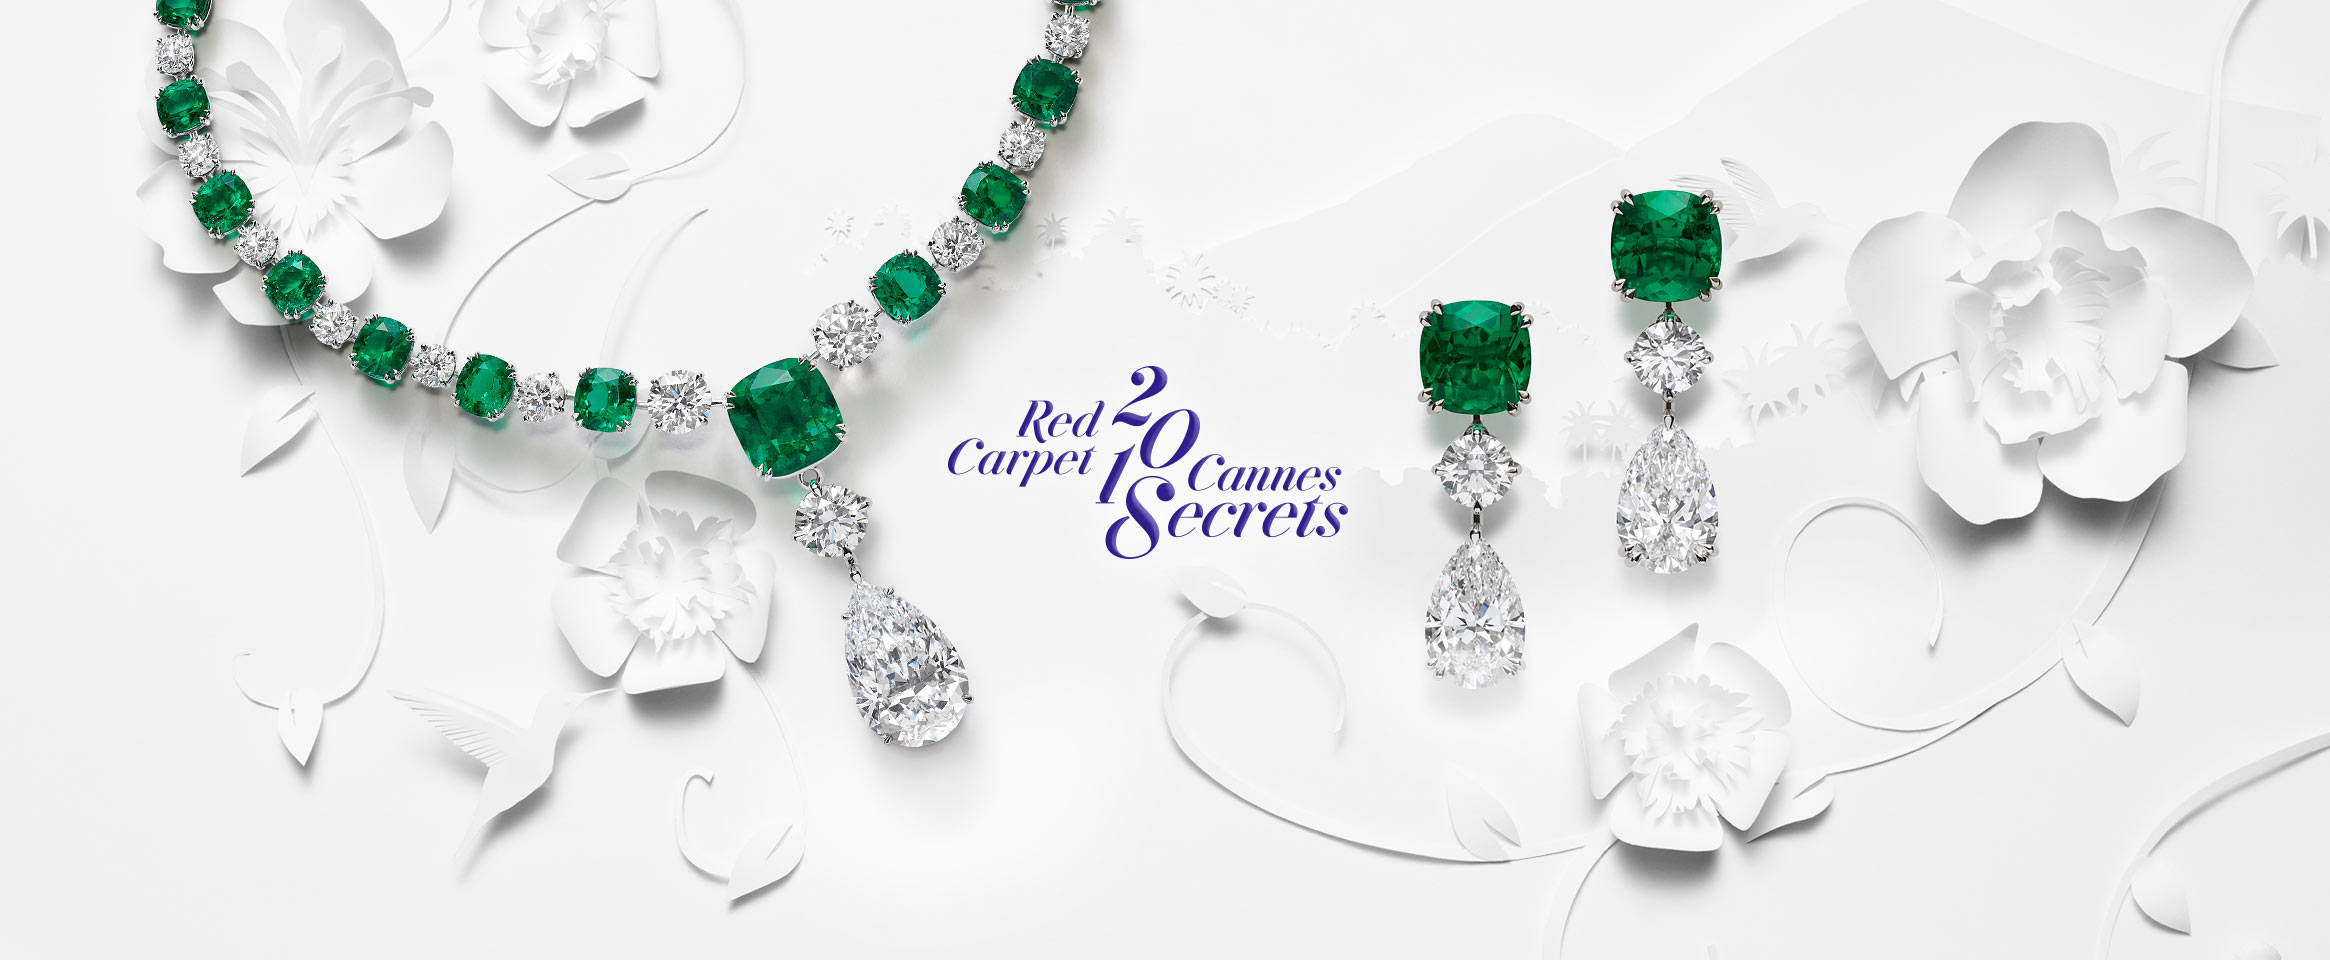 Header for Chopard's Red Carpet Collection 2018